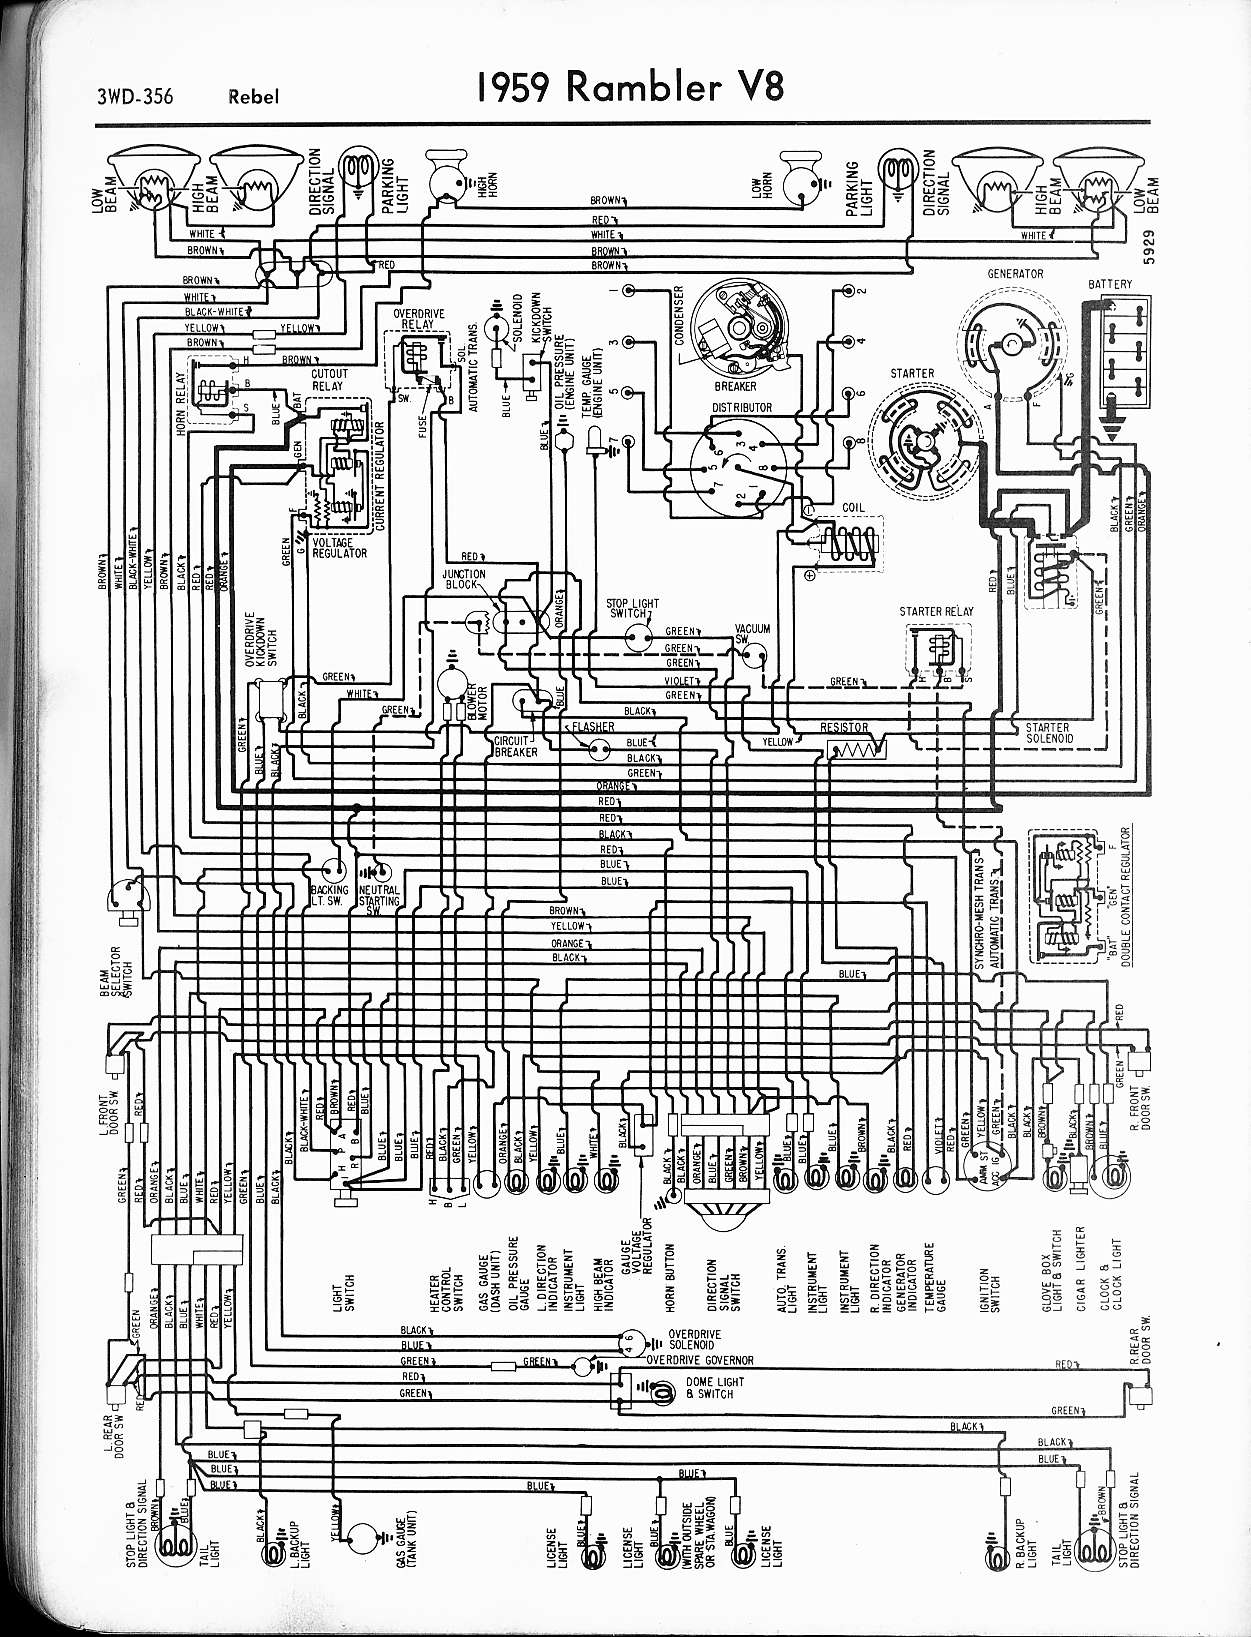 MWire5765 356 rambler wiring diagrams the old car manual project Honda Rebel 250 Wiring Diagram at bayanpartner.co